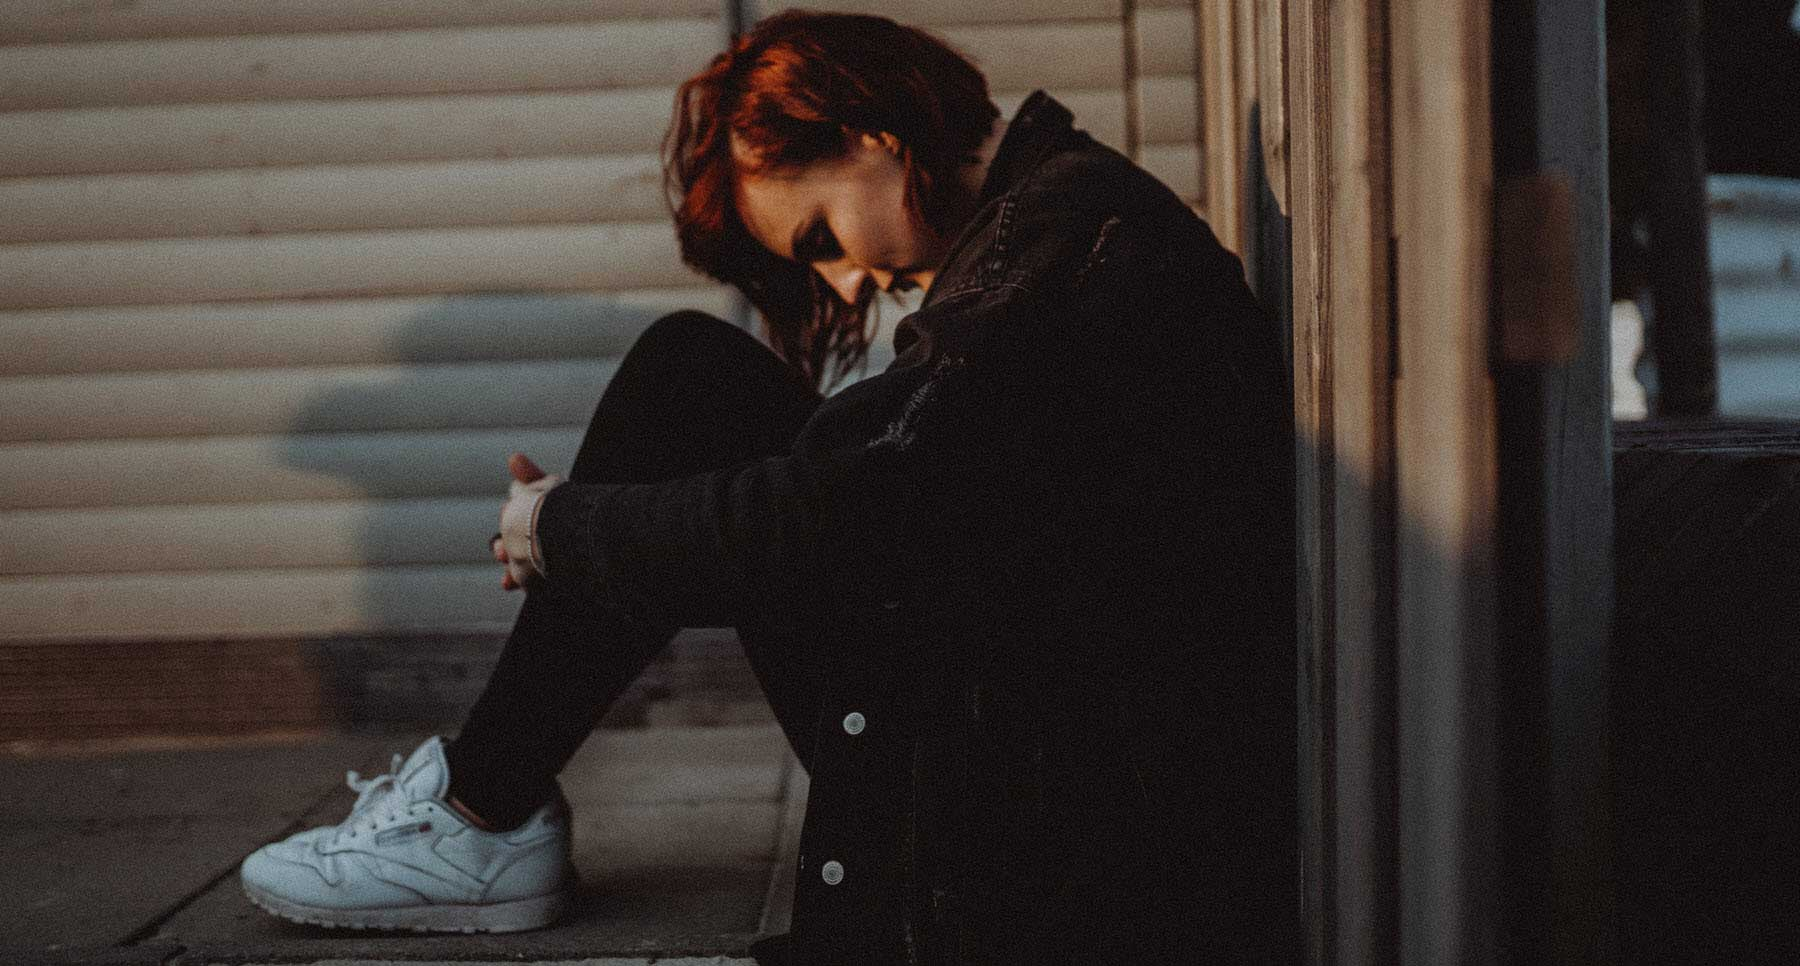 Girl-with-head-down-when-life-is-hard-God-understands-your-pain